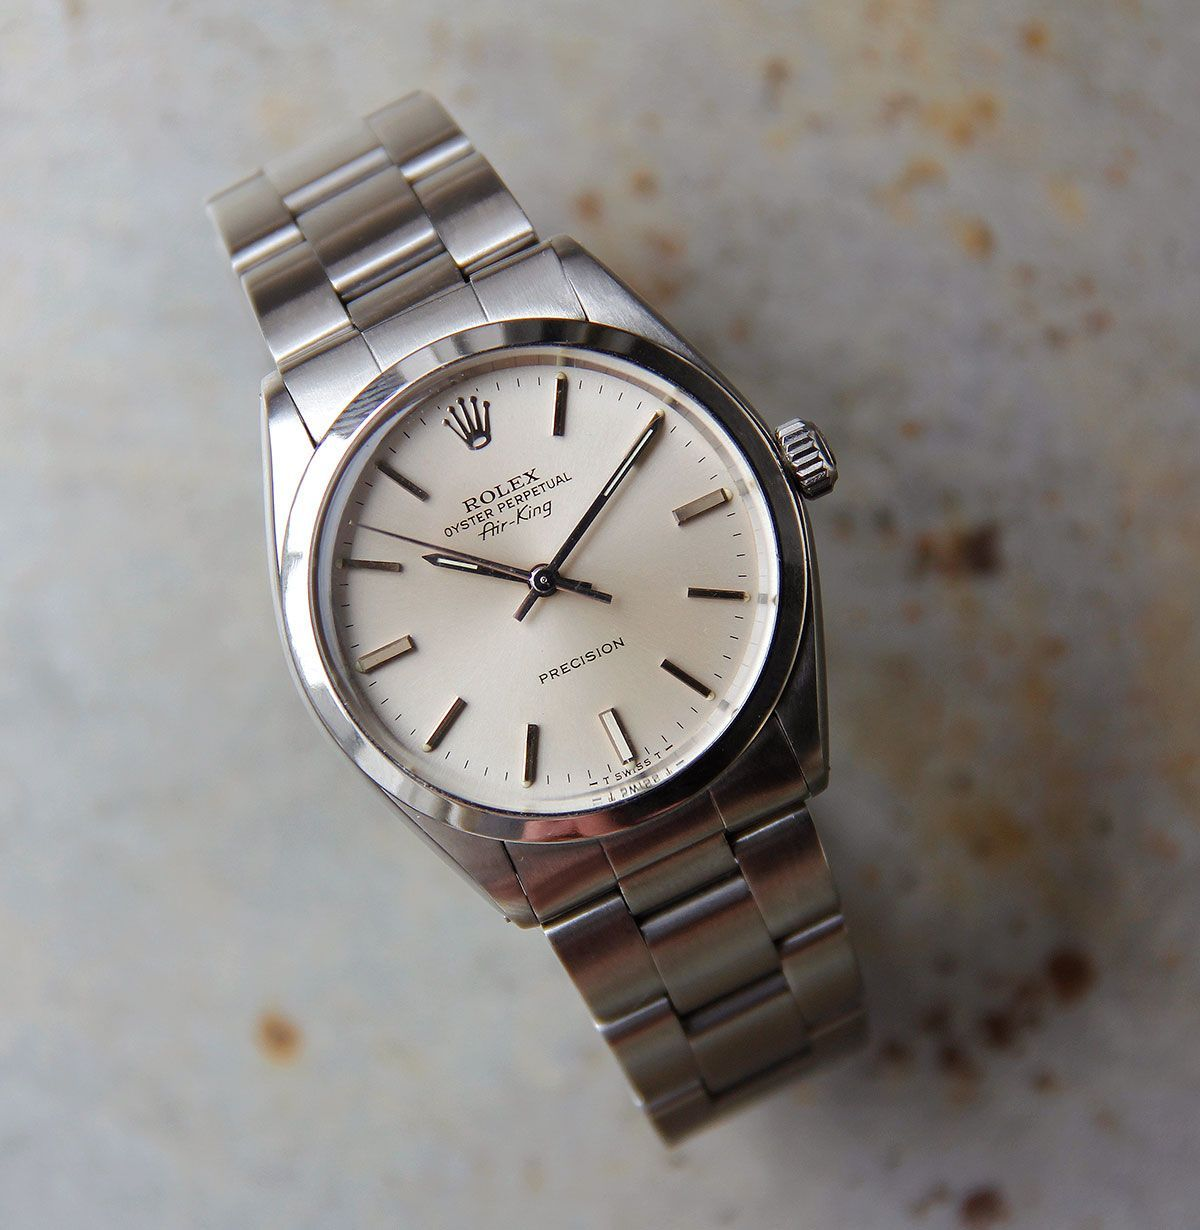 A lovely, historically-rich, original Rolex Air King 5500